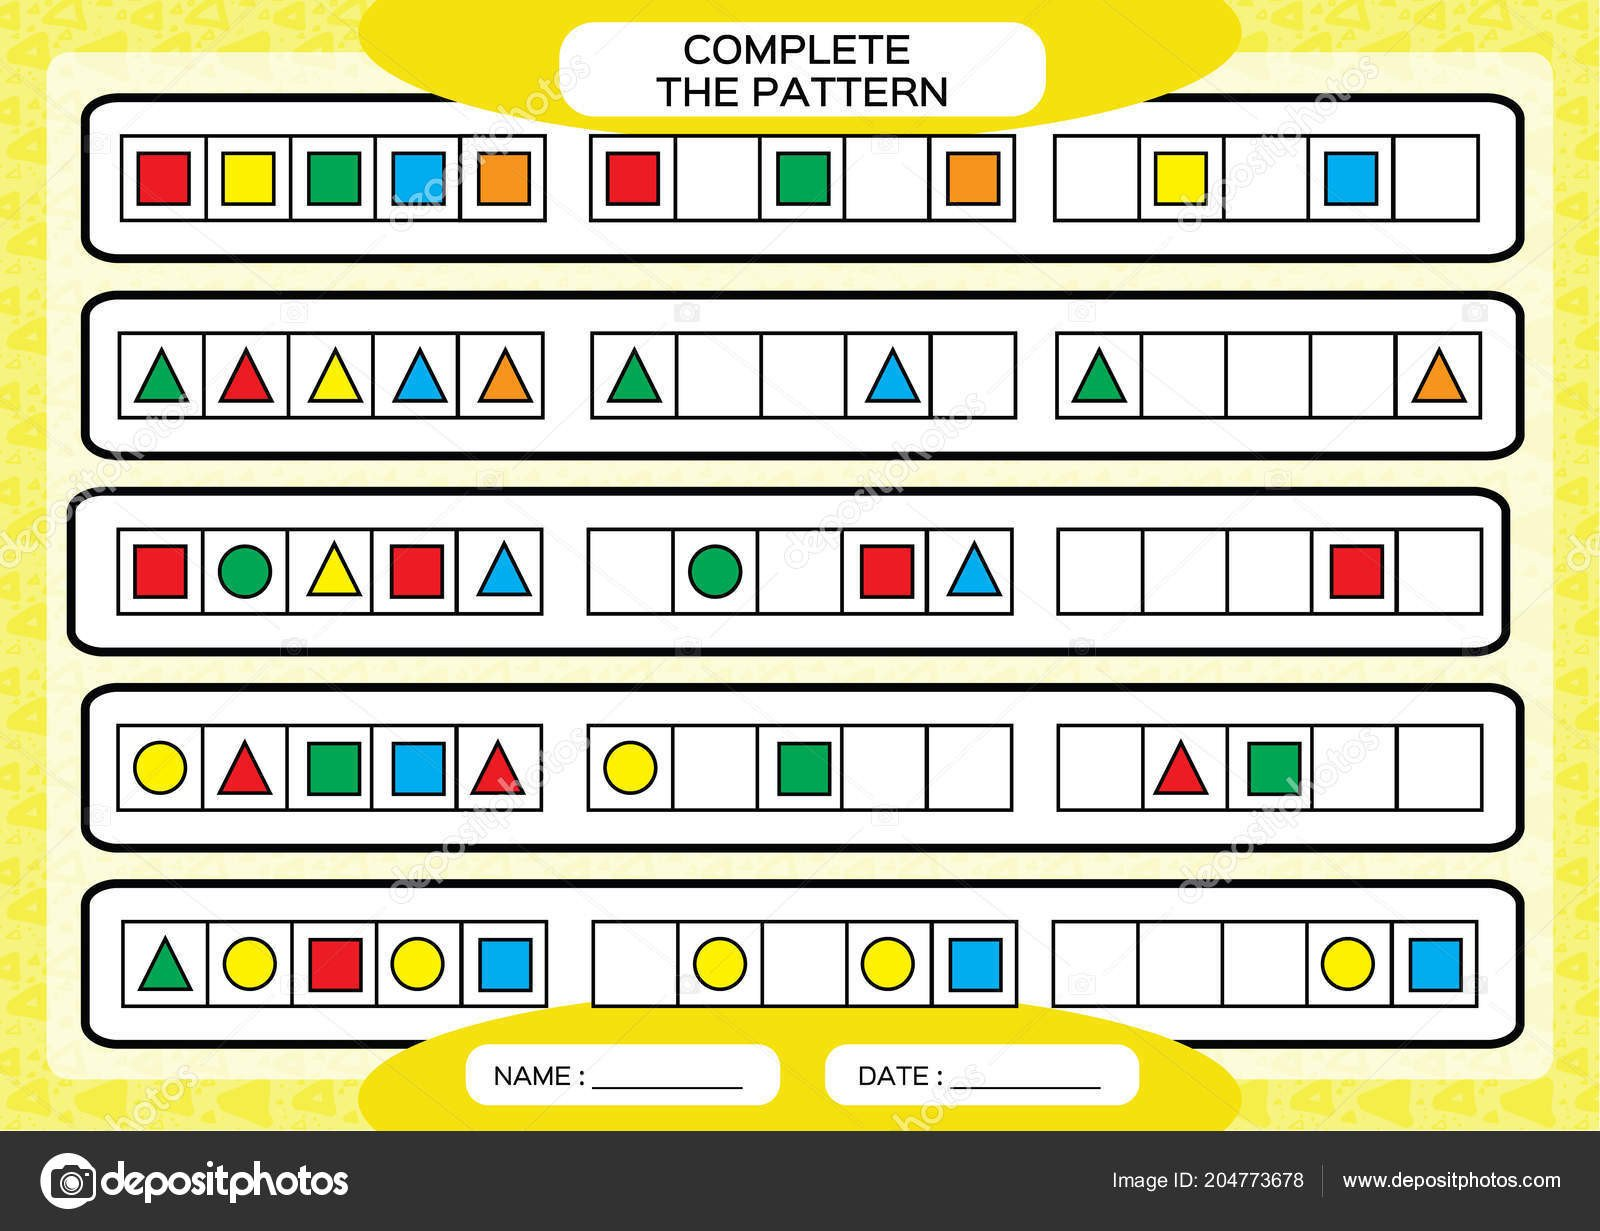 Repeating Patterns Worksheets Plete Simple Repeating Patterns Worksheet for Preschool Kids Practicing Motor Skills Improving Skills Tasks Plete the Pattern with